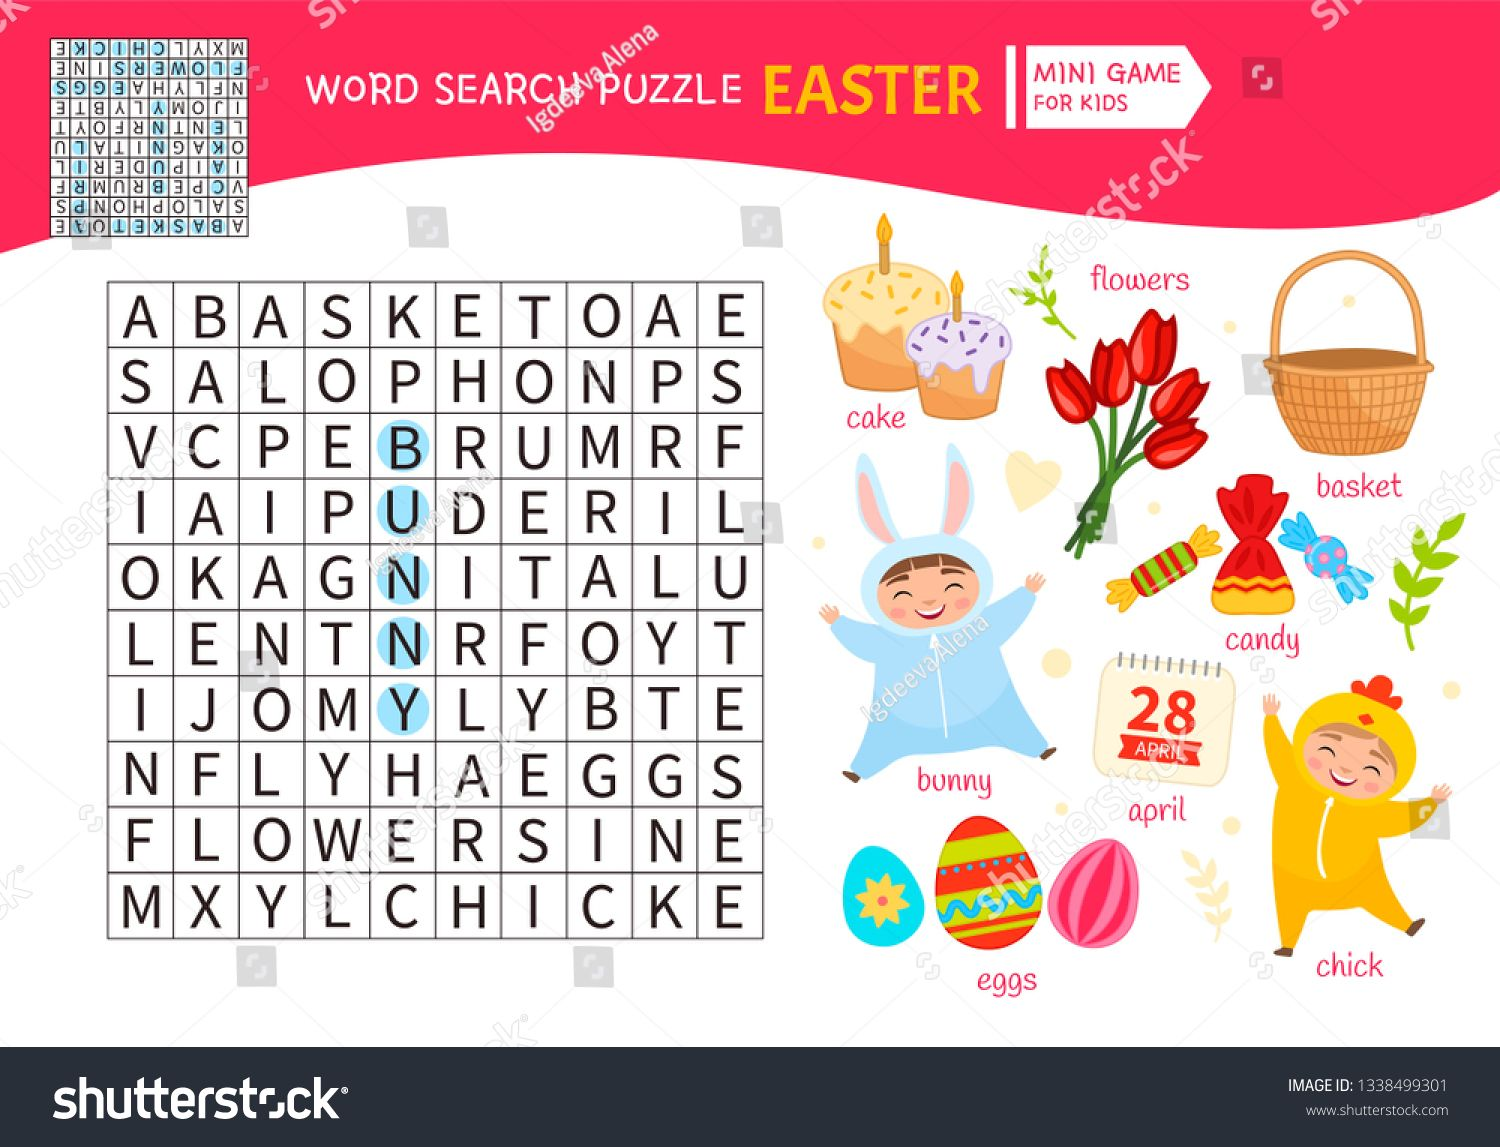 Educational Game For Kids Word Search Puzzle Kids Activity Sheet Cartoon Easter Symbols Ad Kids Word Search Educational Games Activity Sheets For Kids